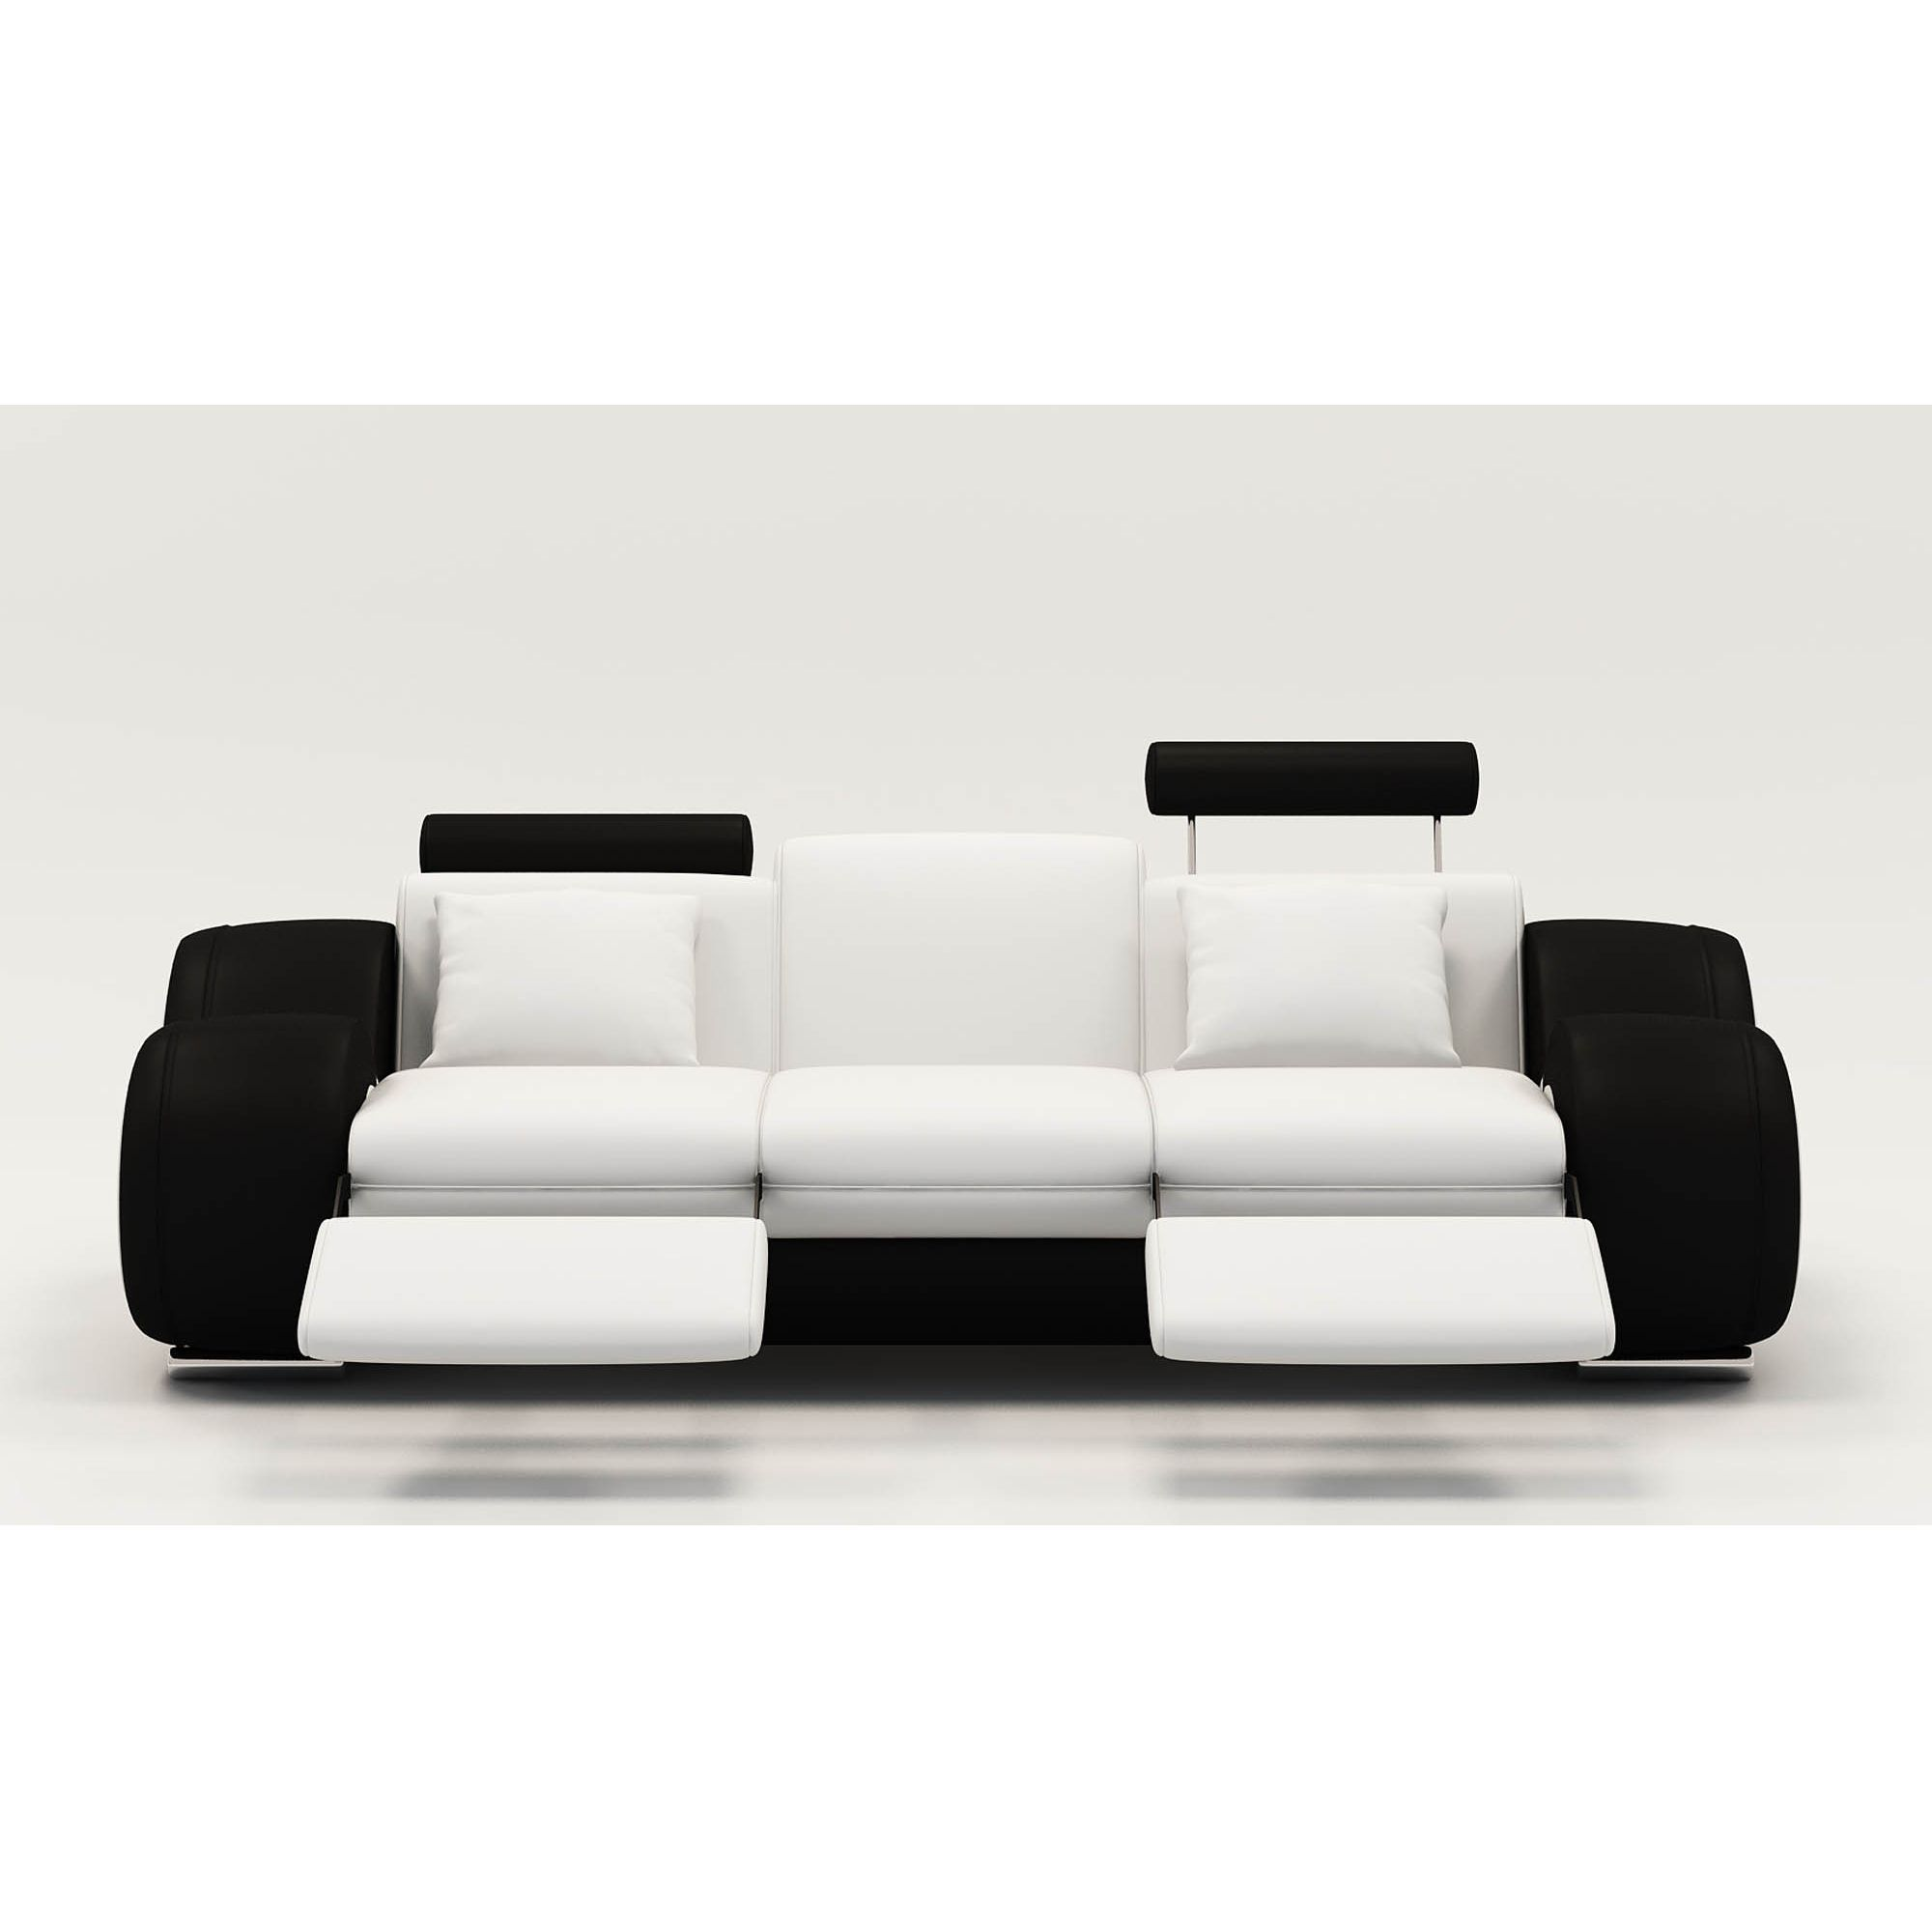 Deco in paris canape design 3 places cuir noir et blanc - Canape relax 3 places ...